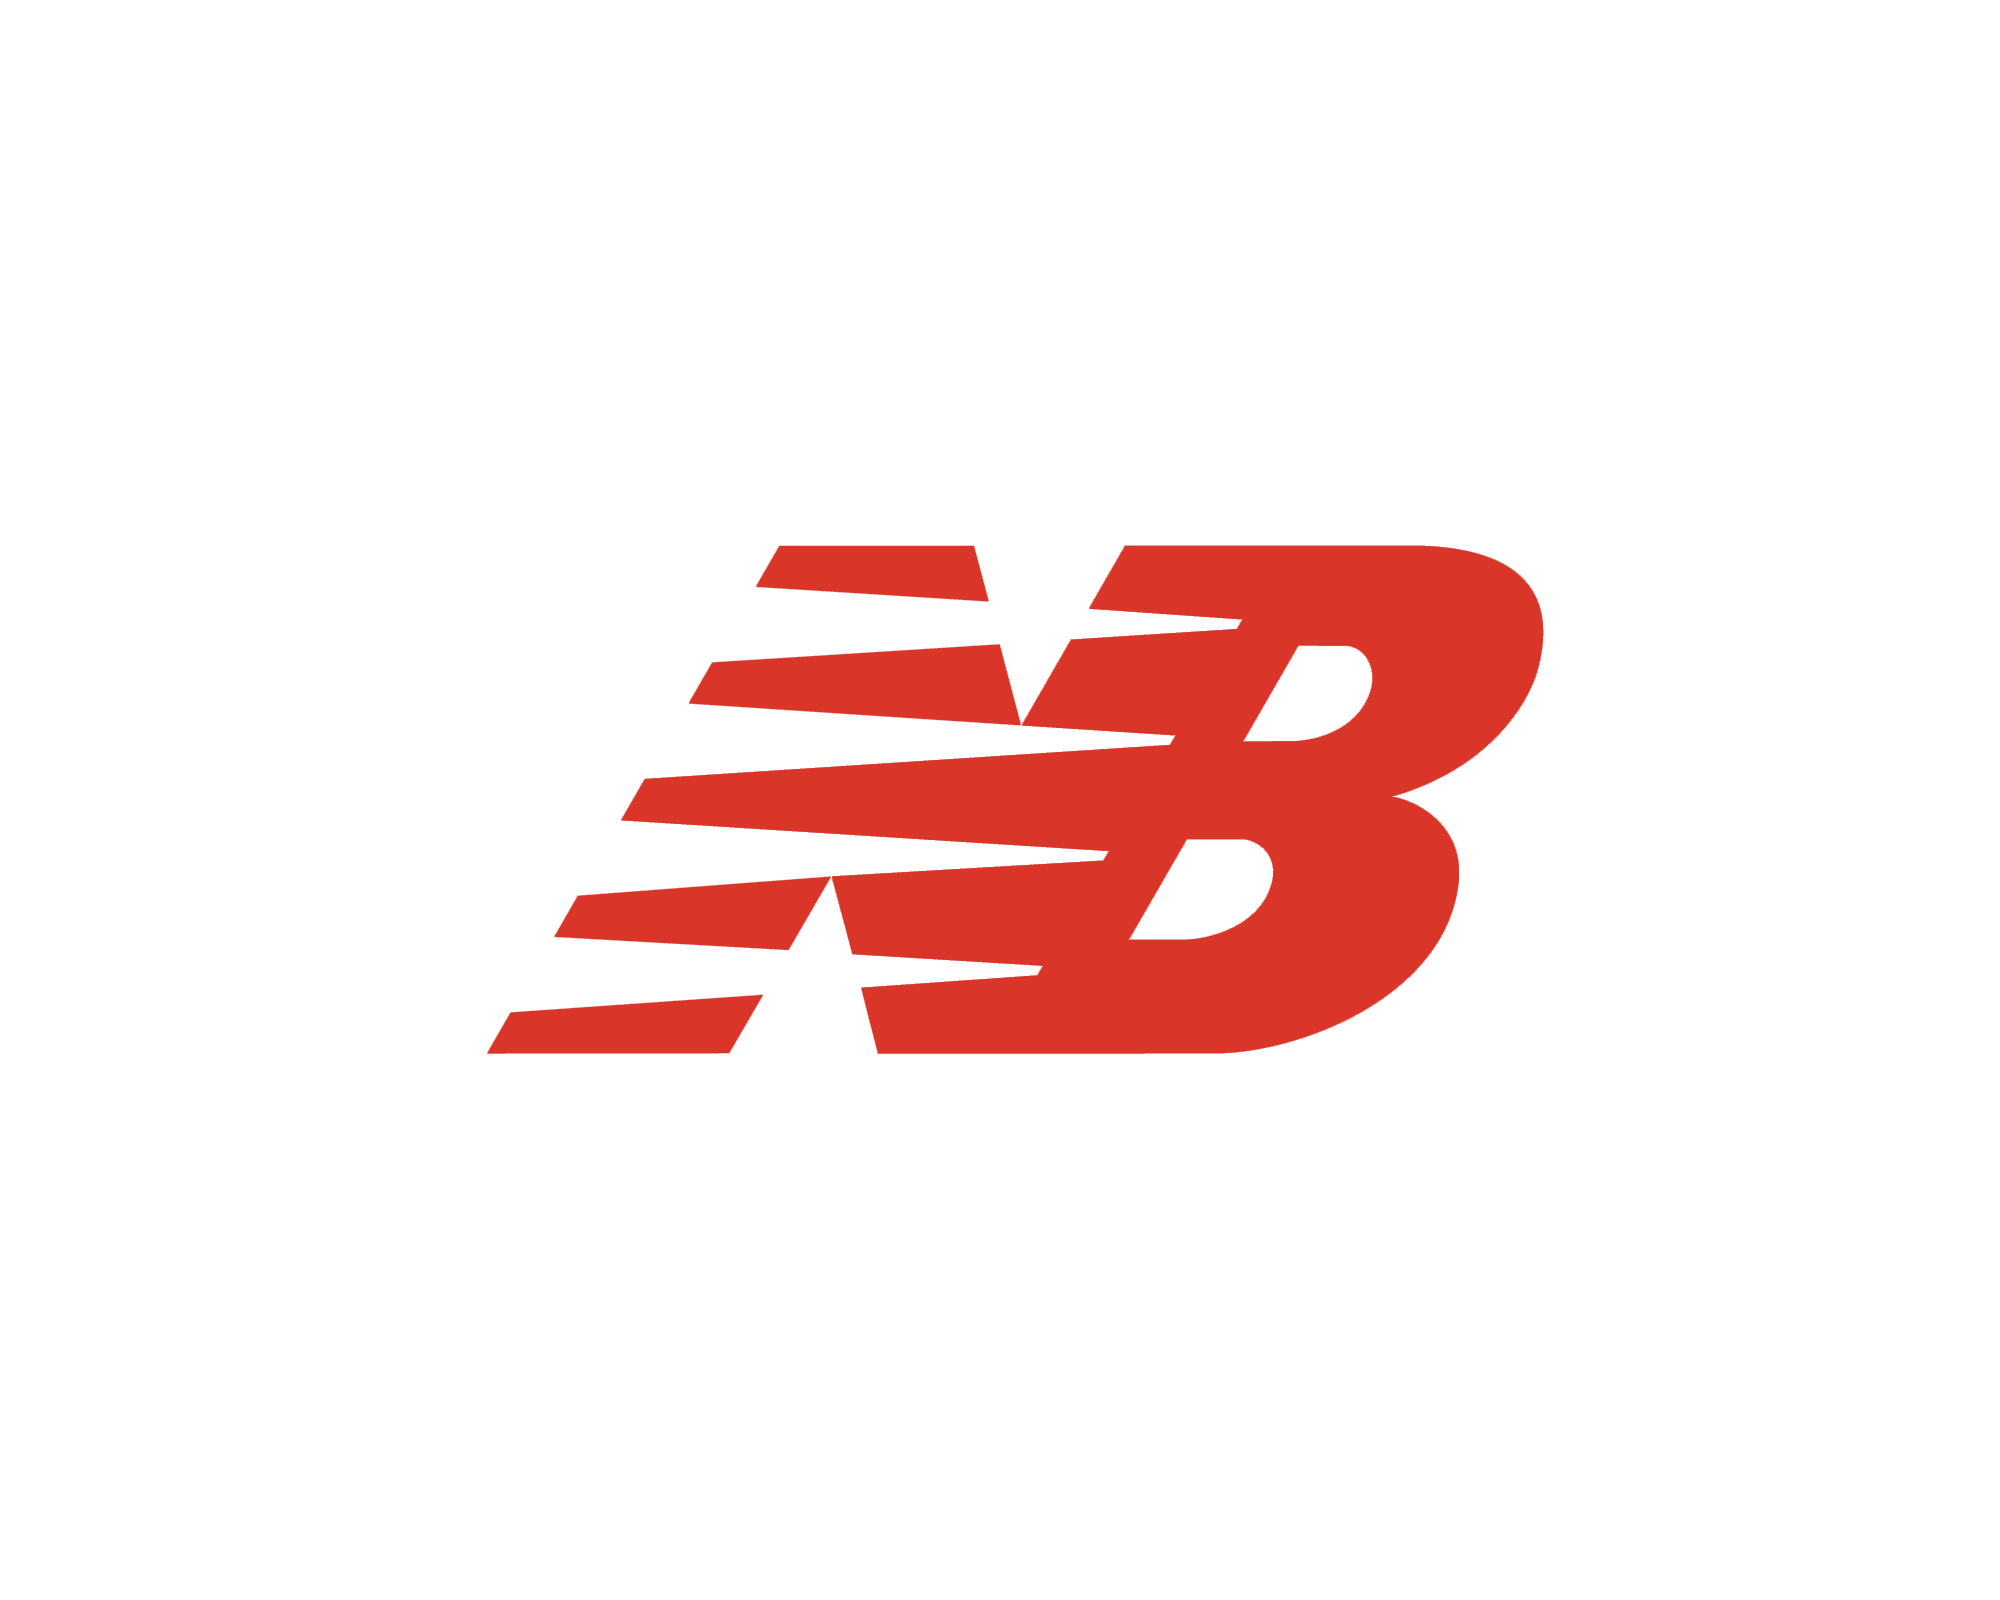 New balance logo logok Design a new logo